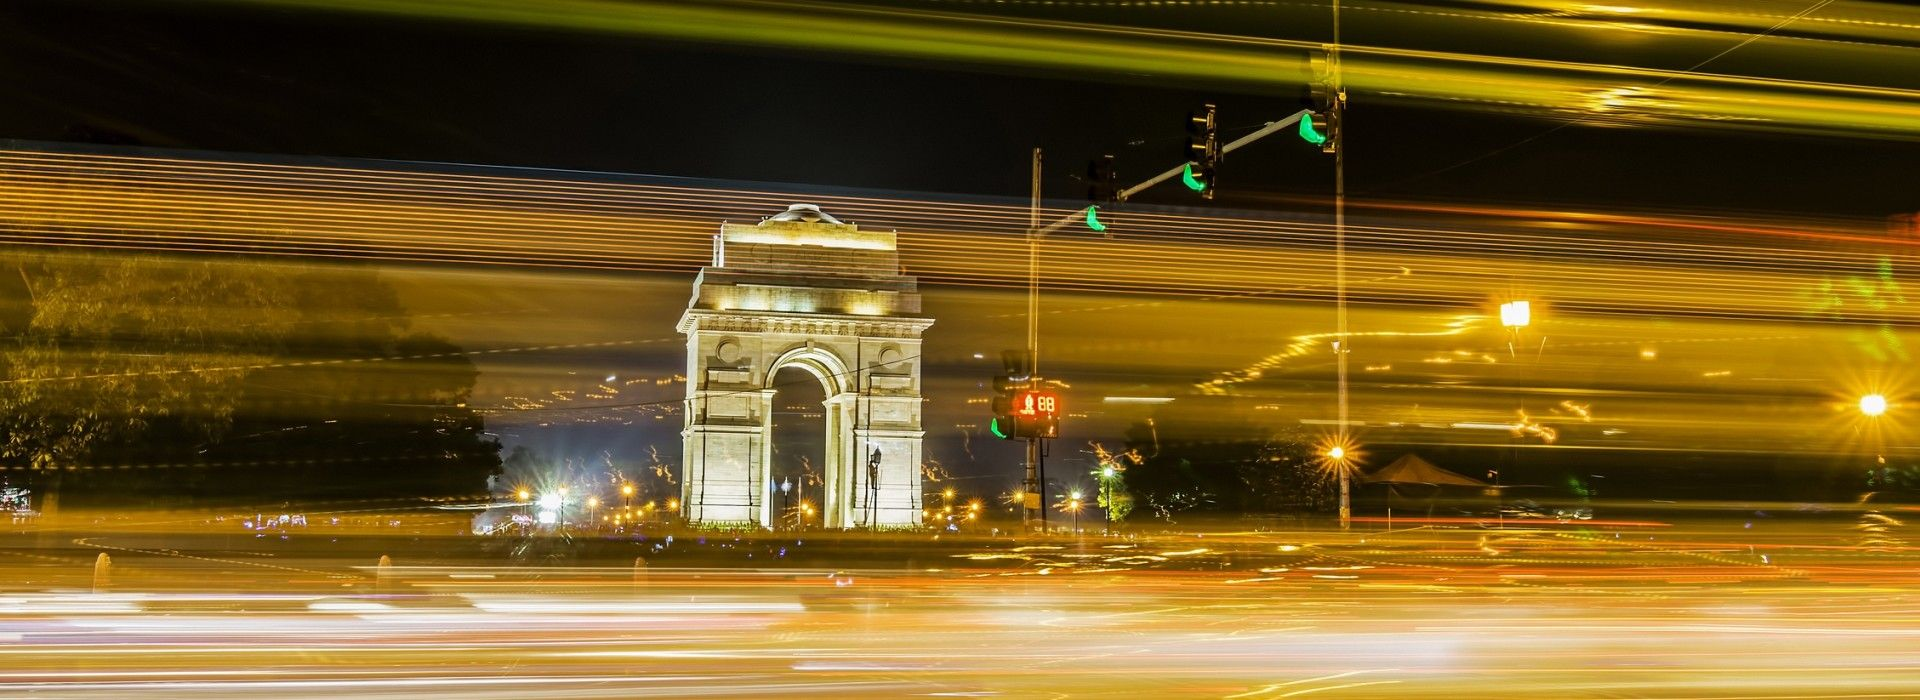 Delhi Tours and Holidays 2019/2020